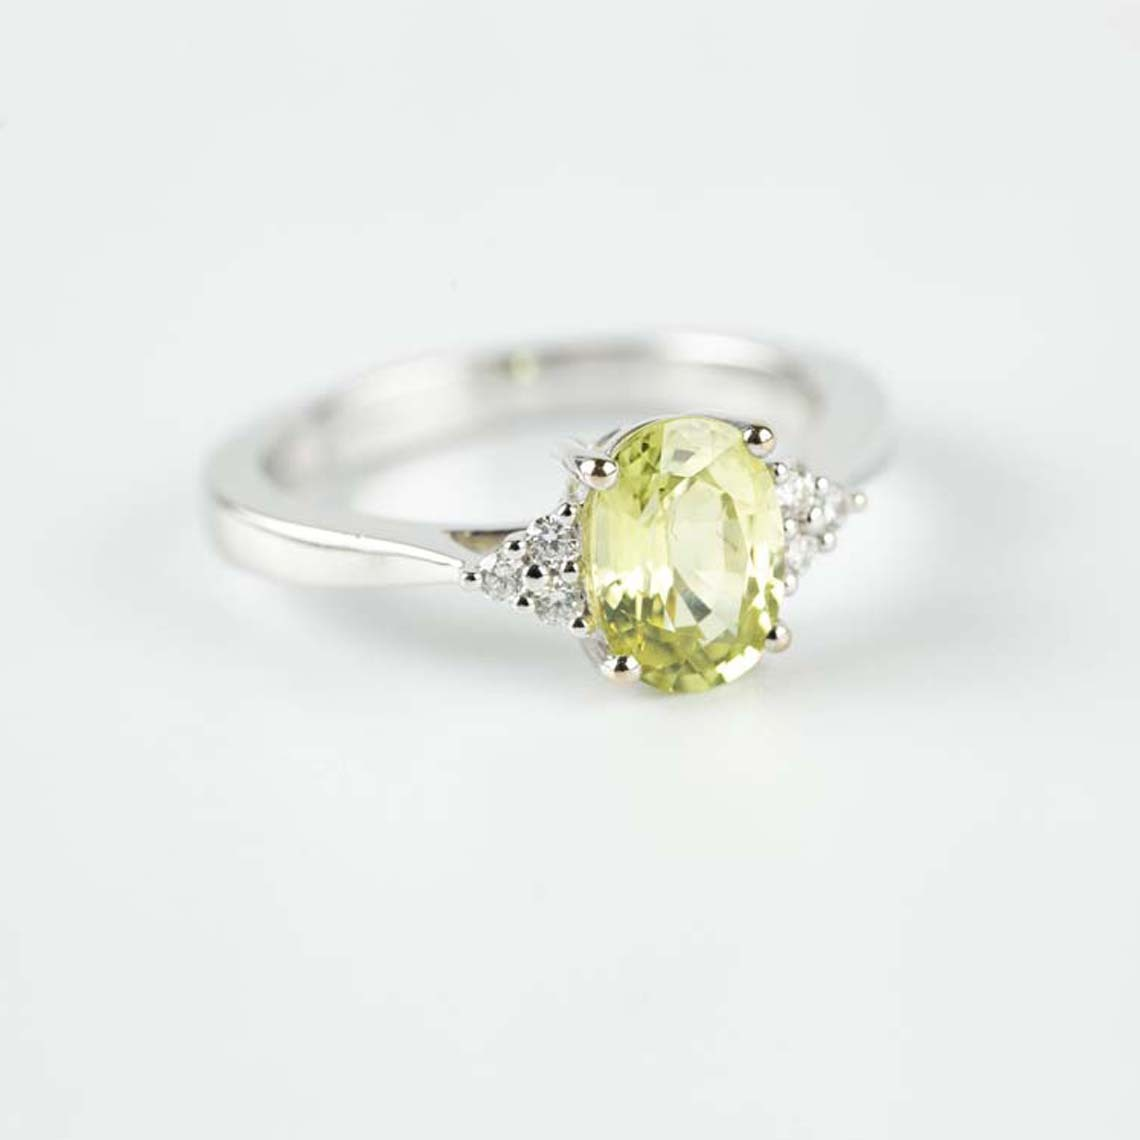 Chrysoberyl and diamond ring